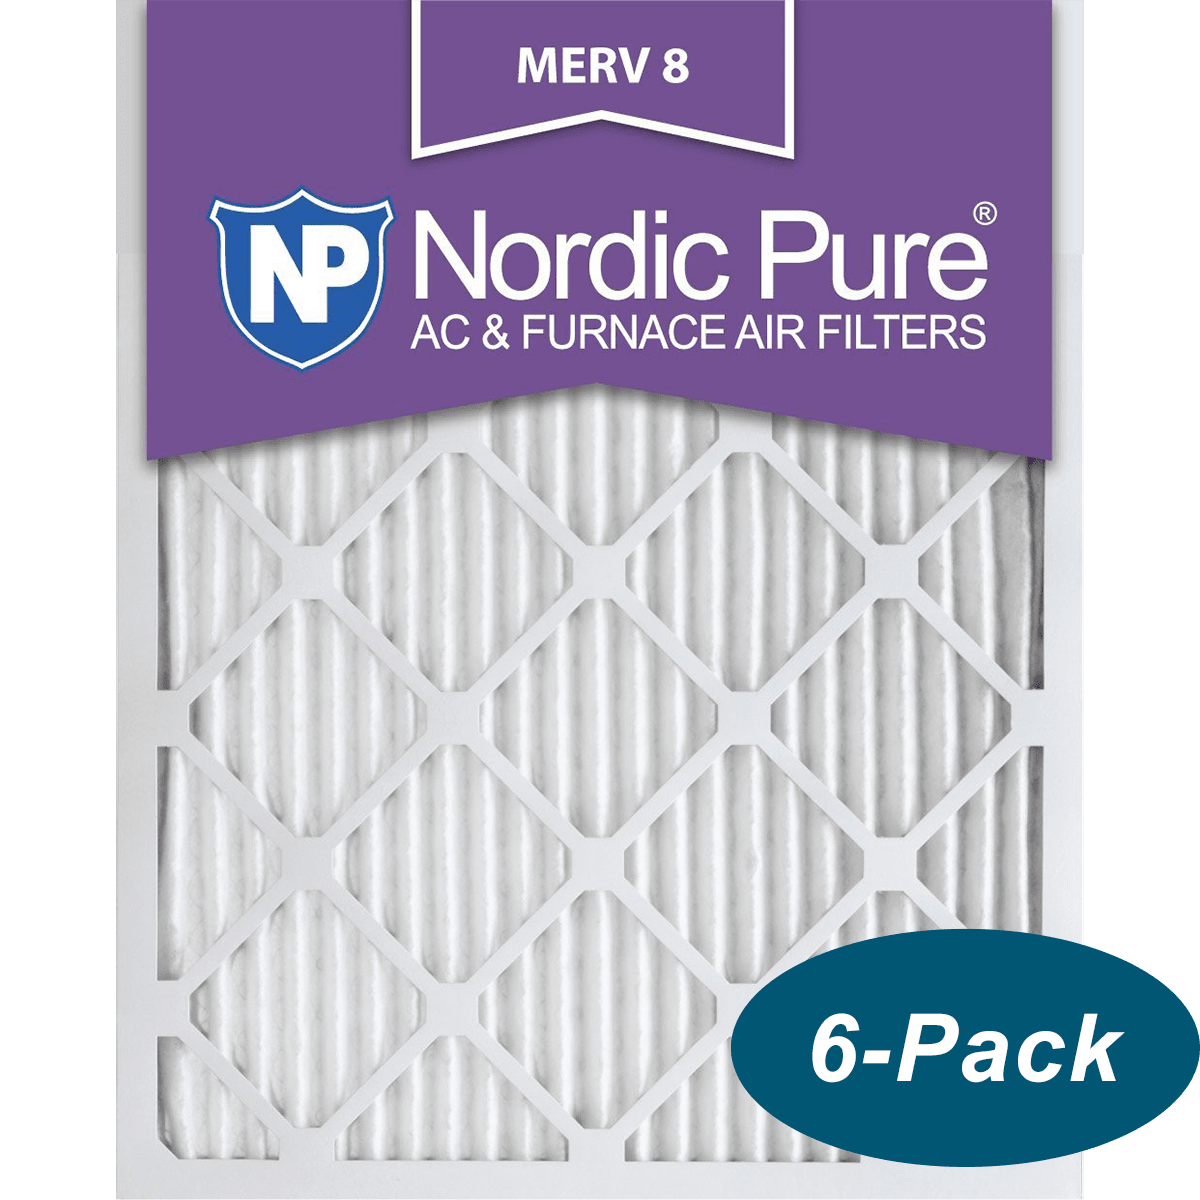 6 PACK 6 PACK Nordic Pure 16x20x1 MERV 8 Pleated AC Furnace Air Filters 6 Pack